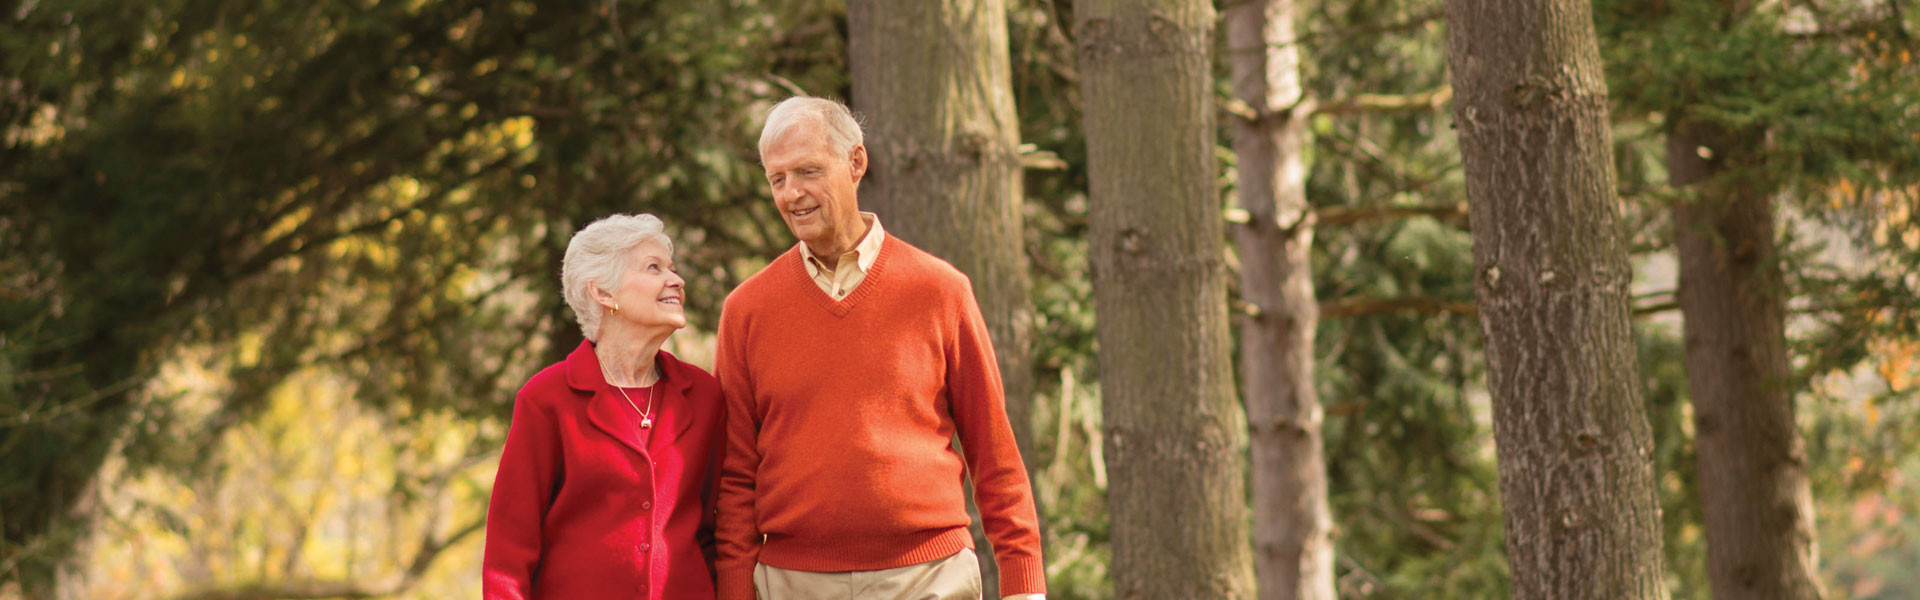 An elderly couple taking a walk in a wooded area